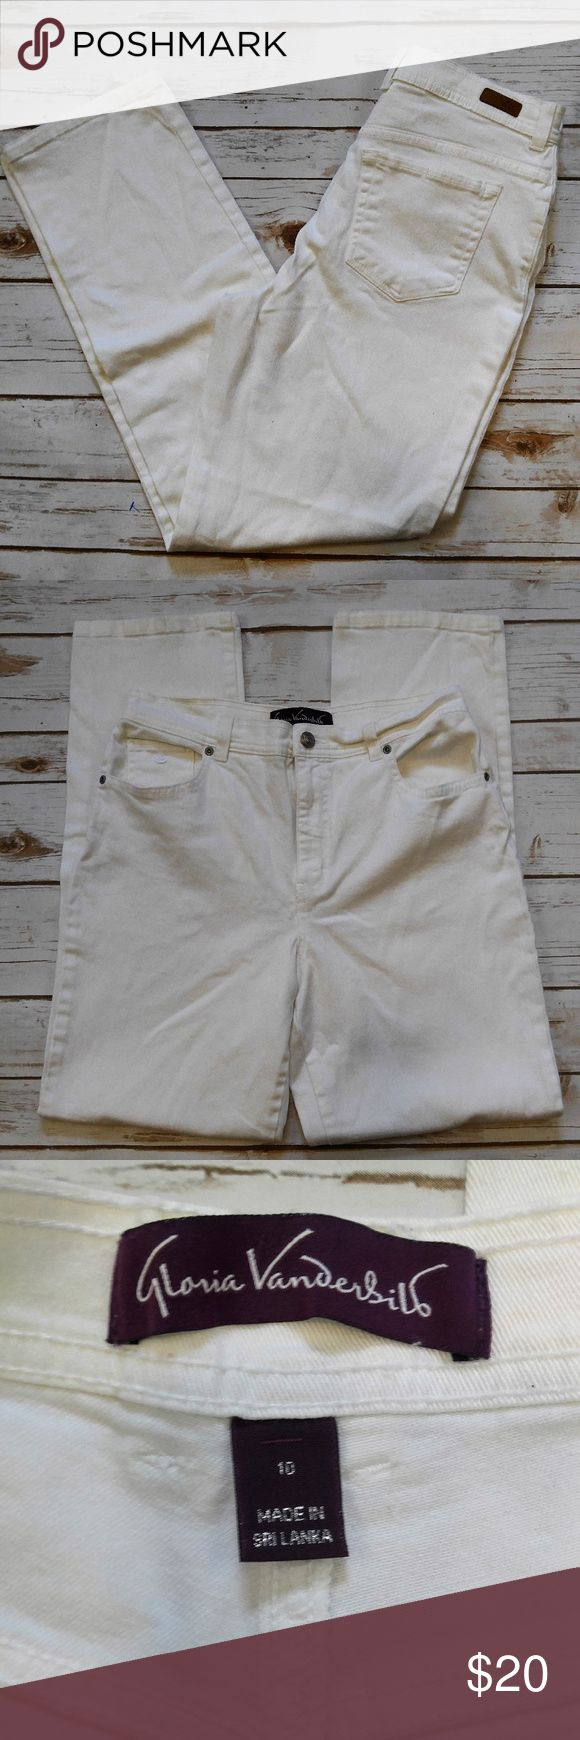 Gloria Vanderbilt White Straight Cut Jeans Gloria Vanderbilt White Straight Cut Jeans Size 10 in excellent used condition. Please feel free to ask any questions or bundle with other listings in my closet for a custom discount on your order. I ship the same day as long as the order is placed before 11:00 AM Central time. If you would like to be notified about price drops remember to 'like' the item to bookmark it! Thank you for checking out my closet and happy poshing!! Gloria Vanderbilt…